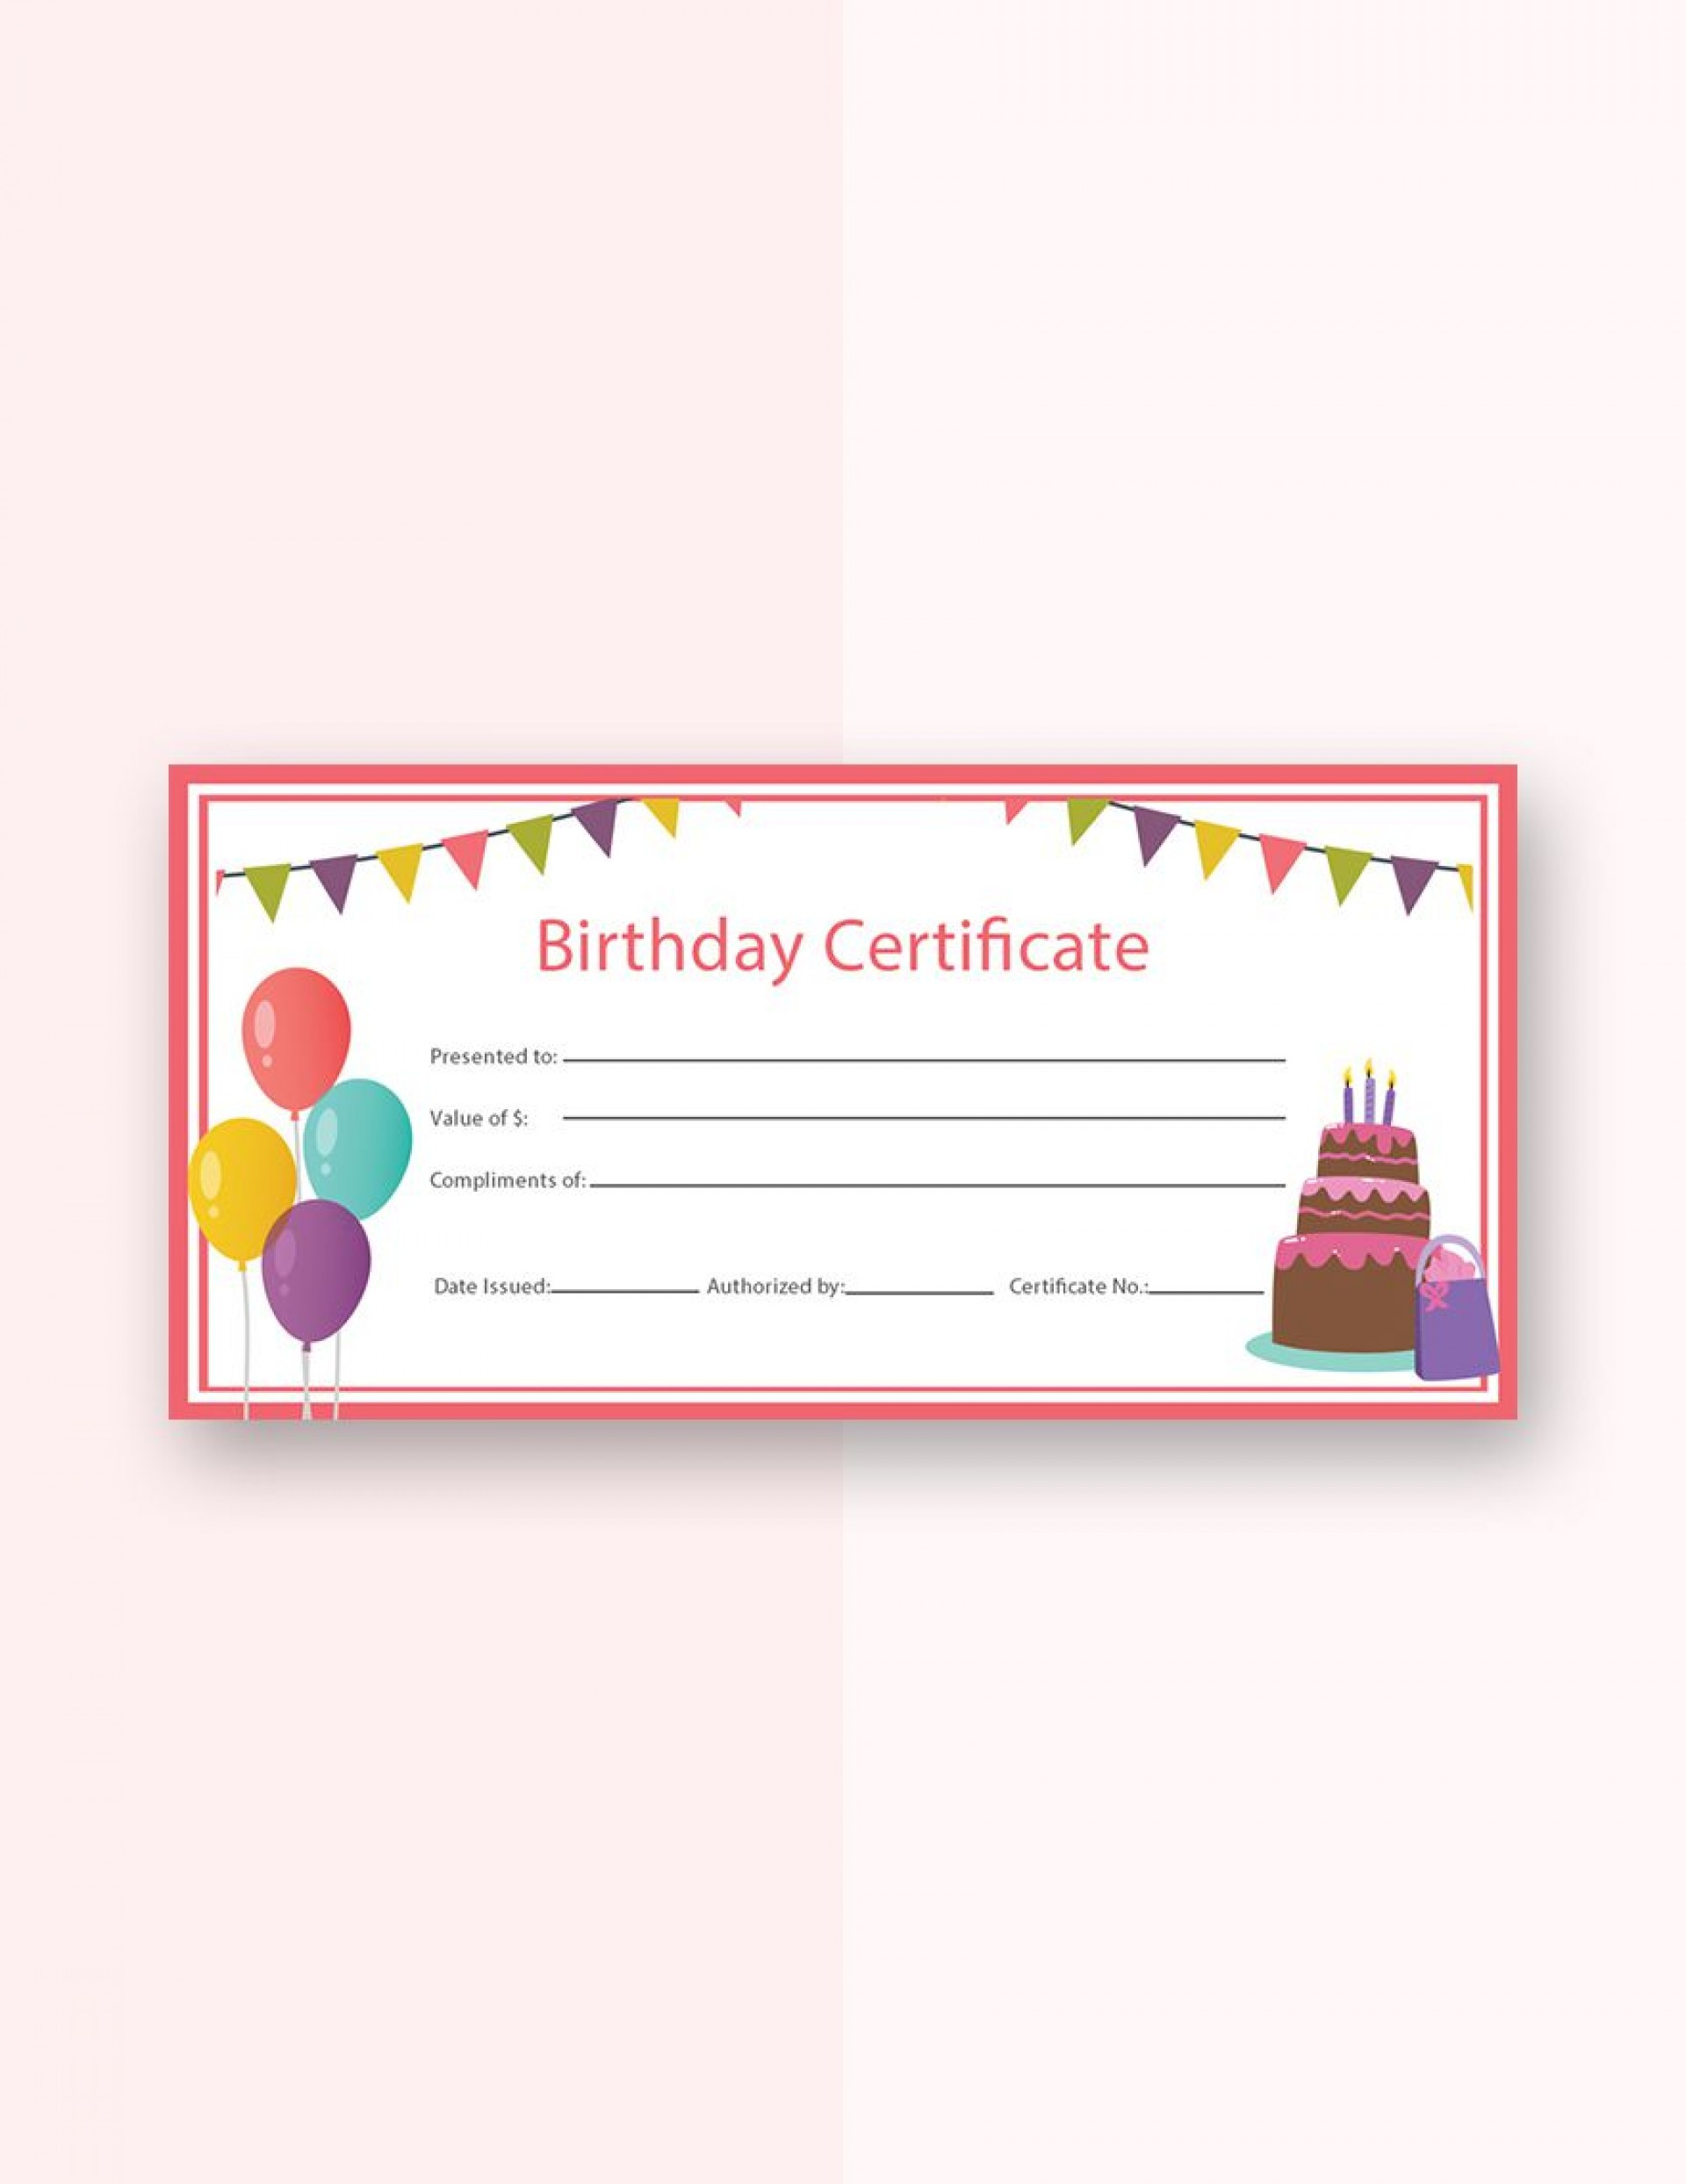 004 Fascinating Free Template For Gift Certificate High Definition  Printable Birthday Mac In Word1920